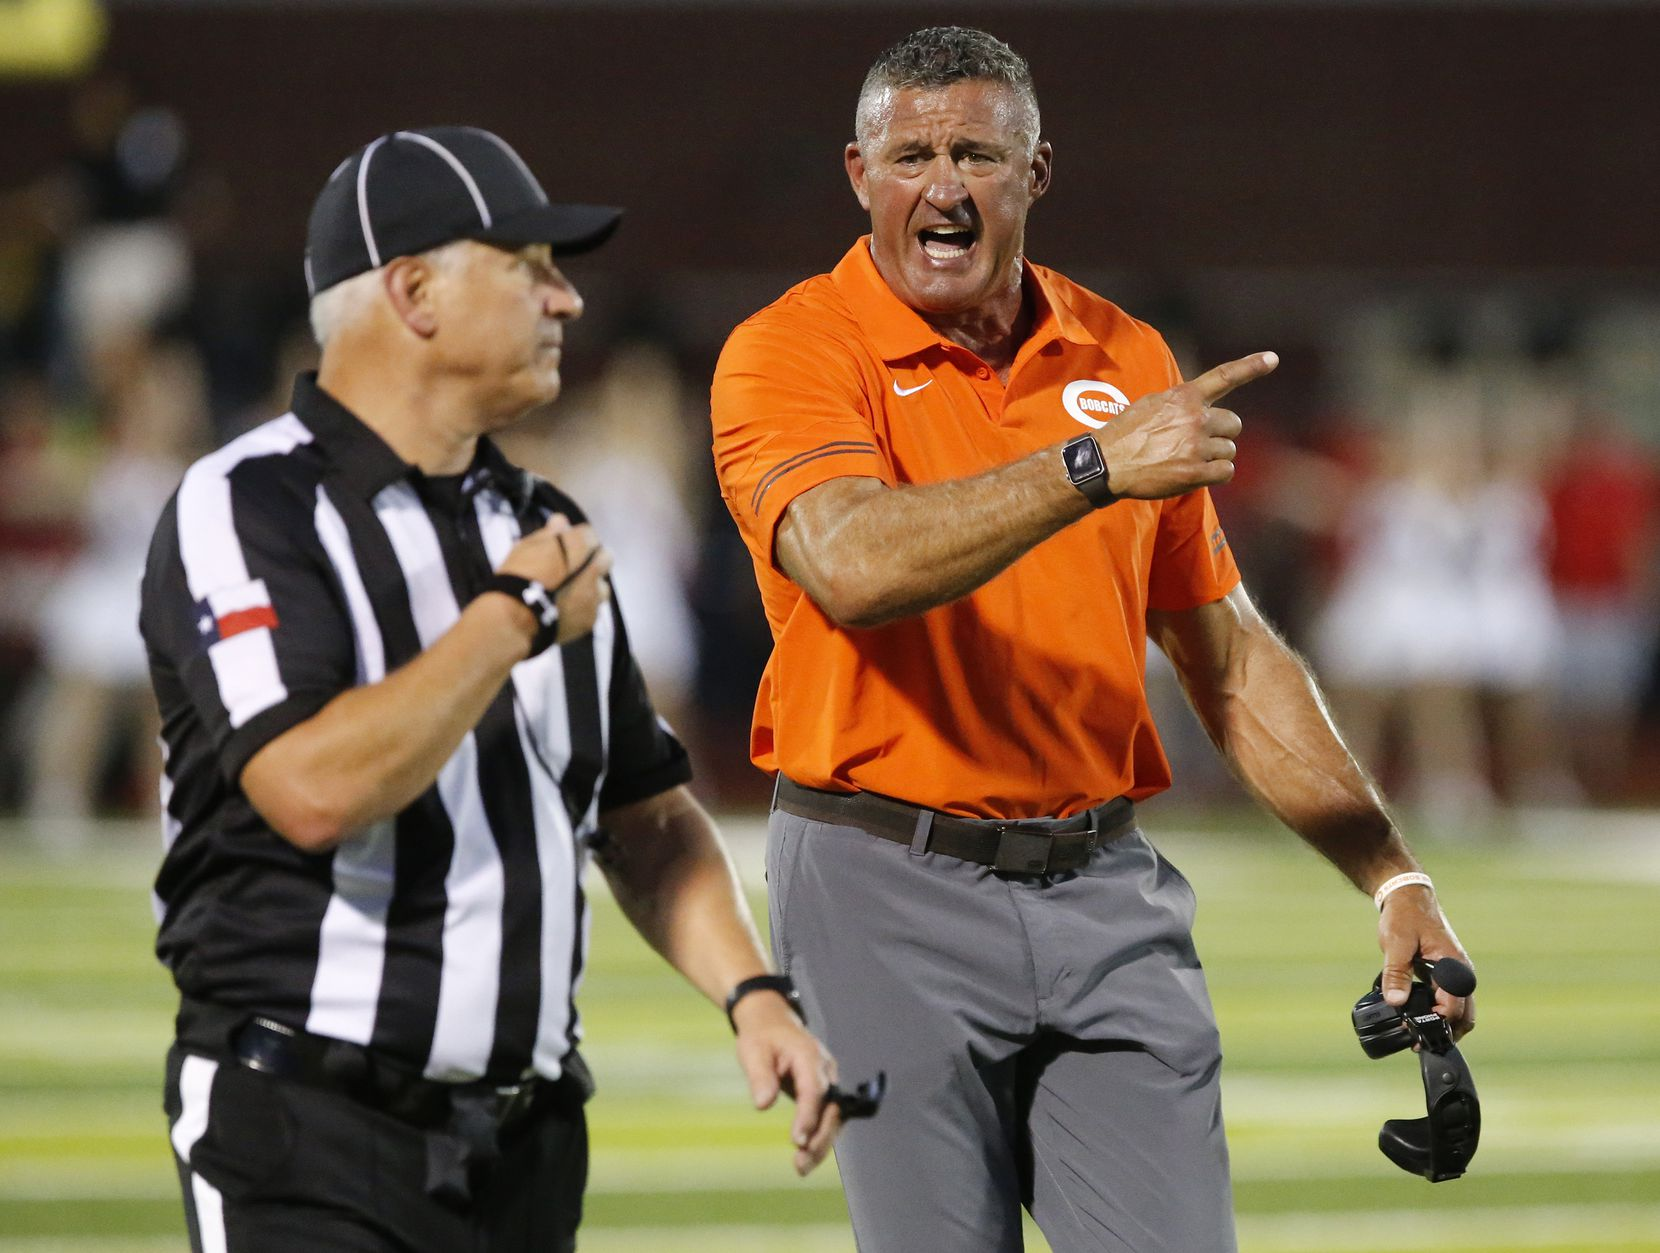 Celina High School head coach Bill Elliott questions why a touchdown was called back for a penalty during the first half as Melissa High School hosted Celina High School at Cardinal Field in Melissa on Friday night, August 27, 2021. (Stewart F. House/Special Contributor)